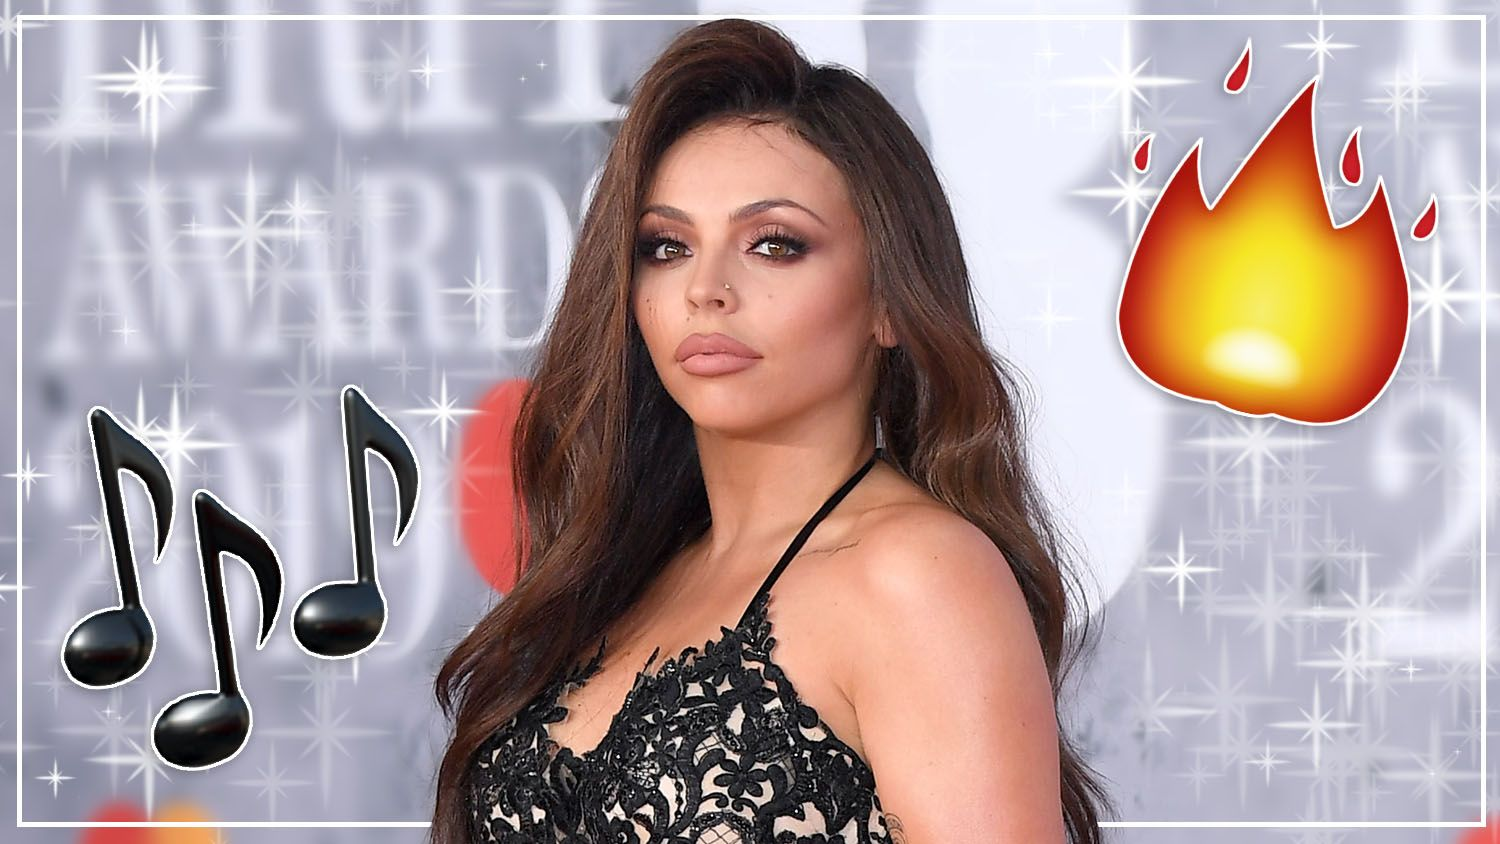 Jesy Nelson: Get to know the Little Mix star 💕